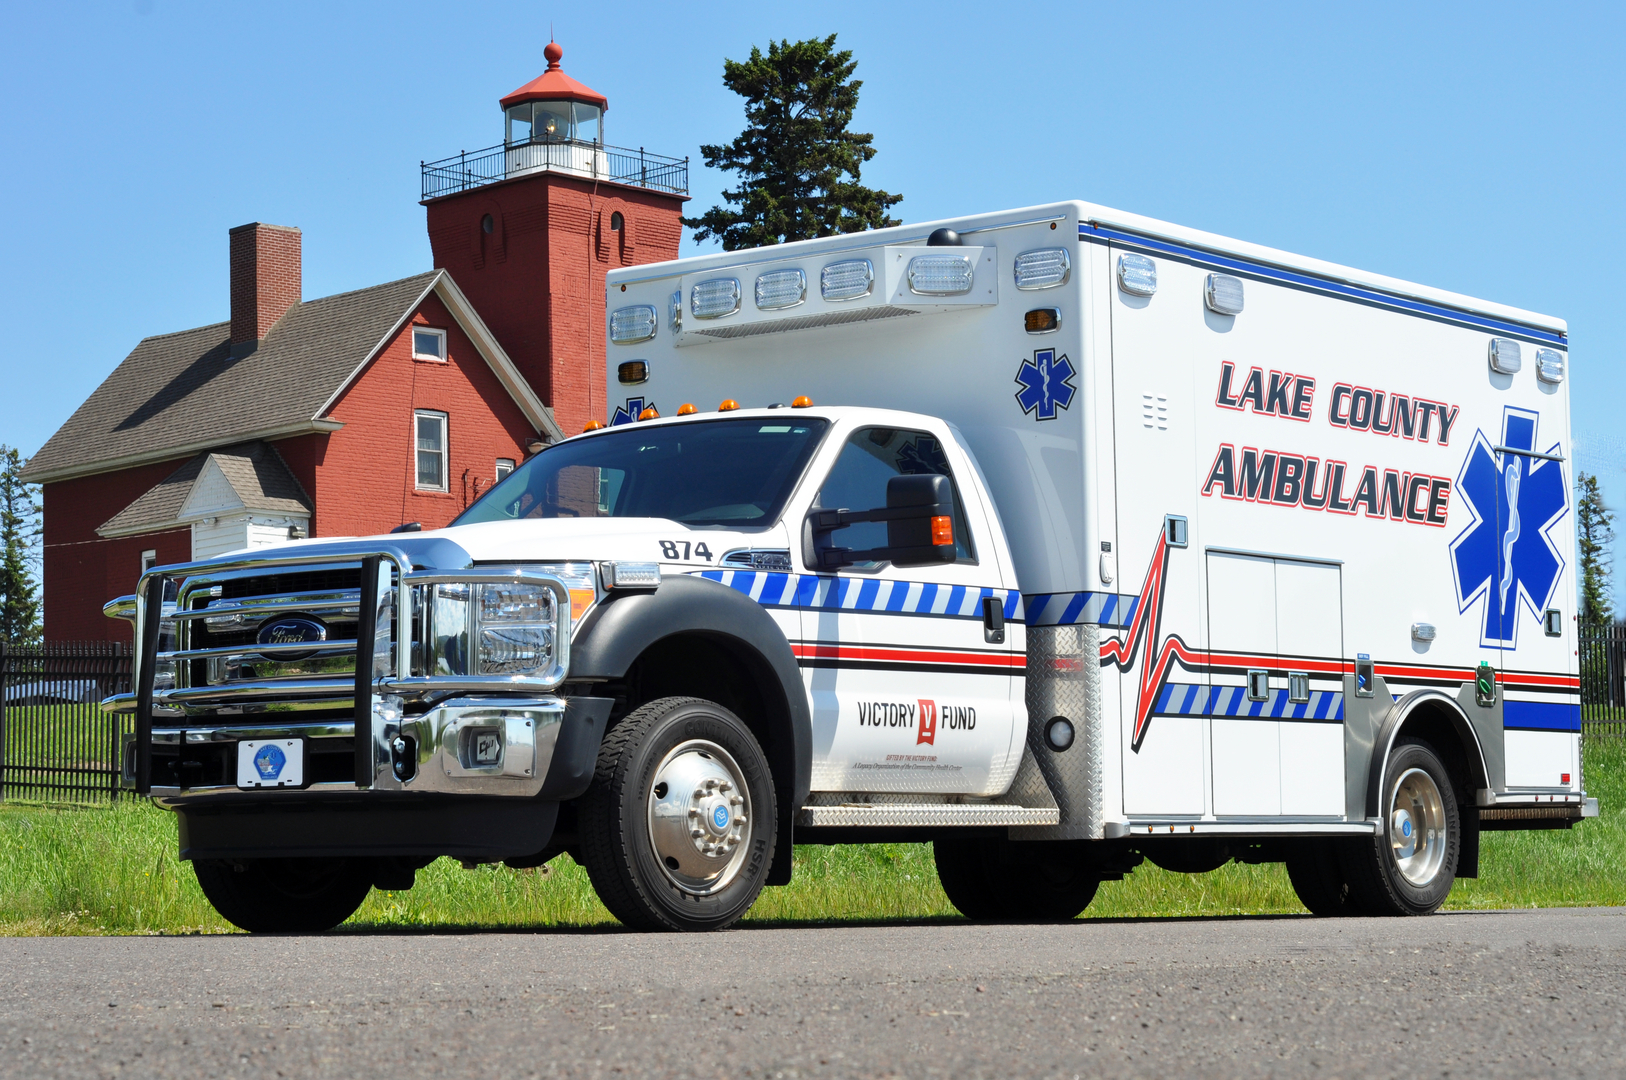 Lake County Ambulance Service - Medical Transport, Cpr, Bls Cpr